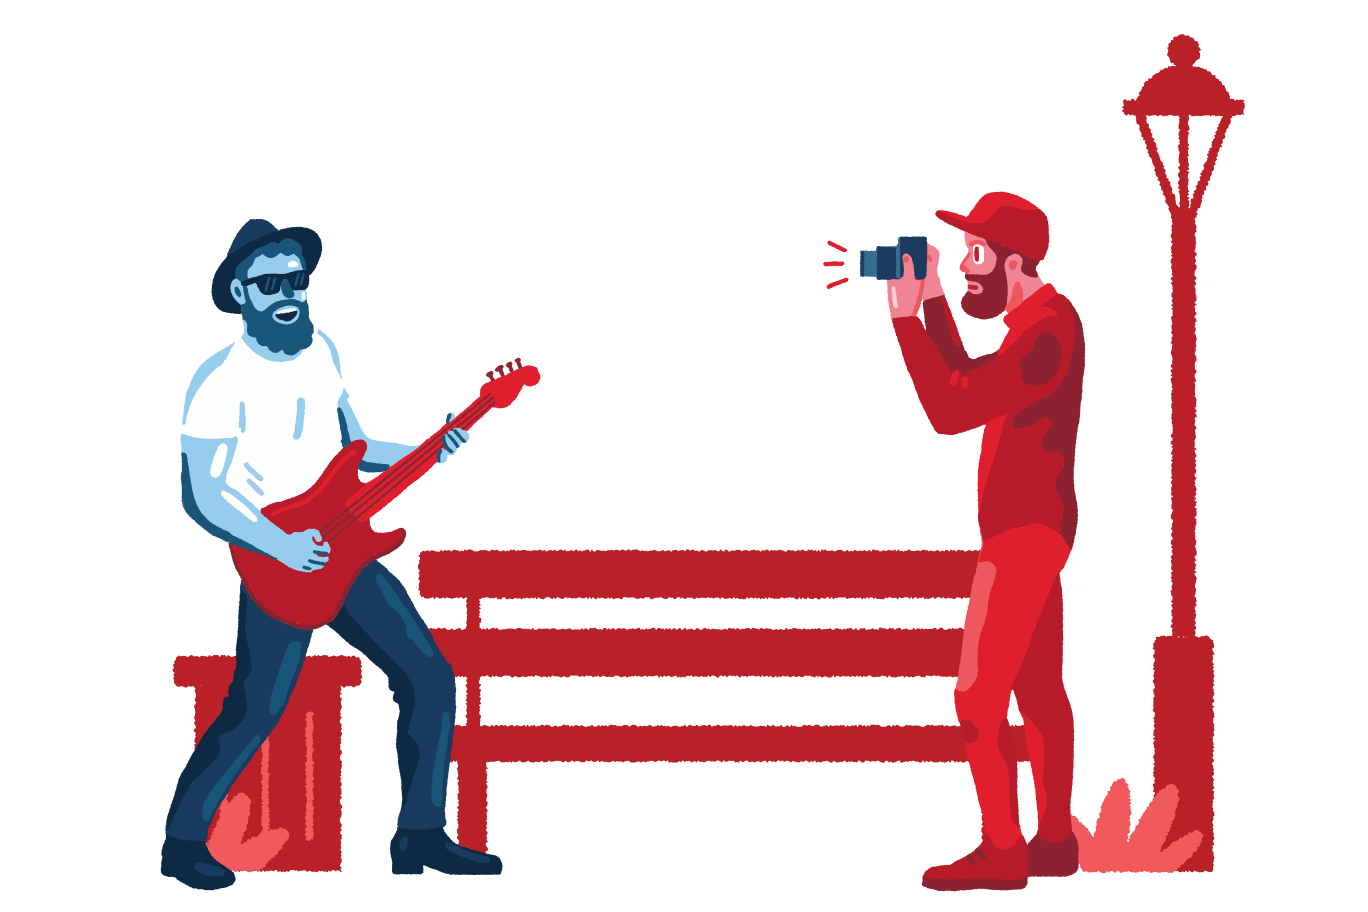 Shooting street musician Clipart illustration in PNG, SVG